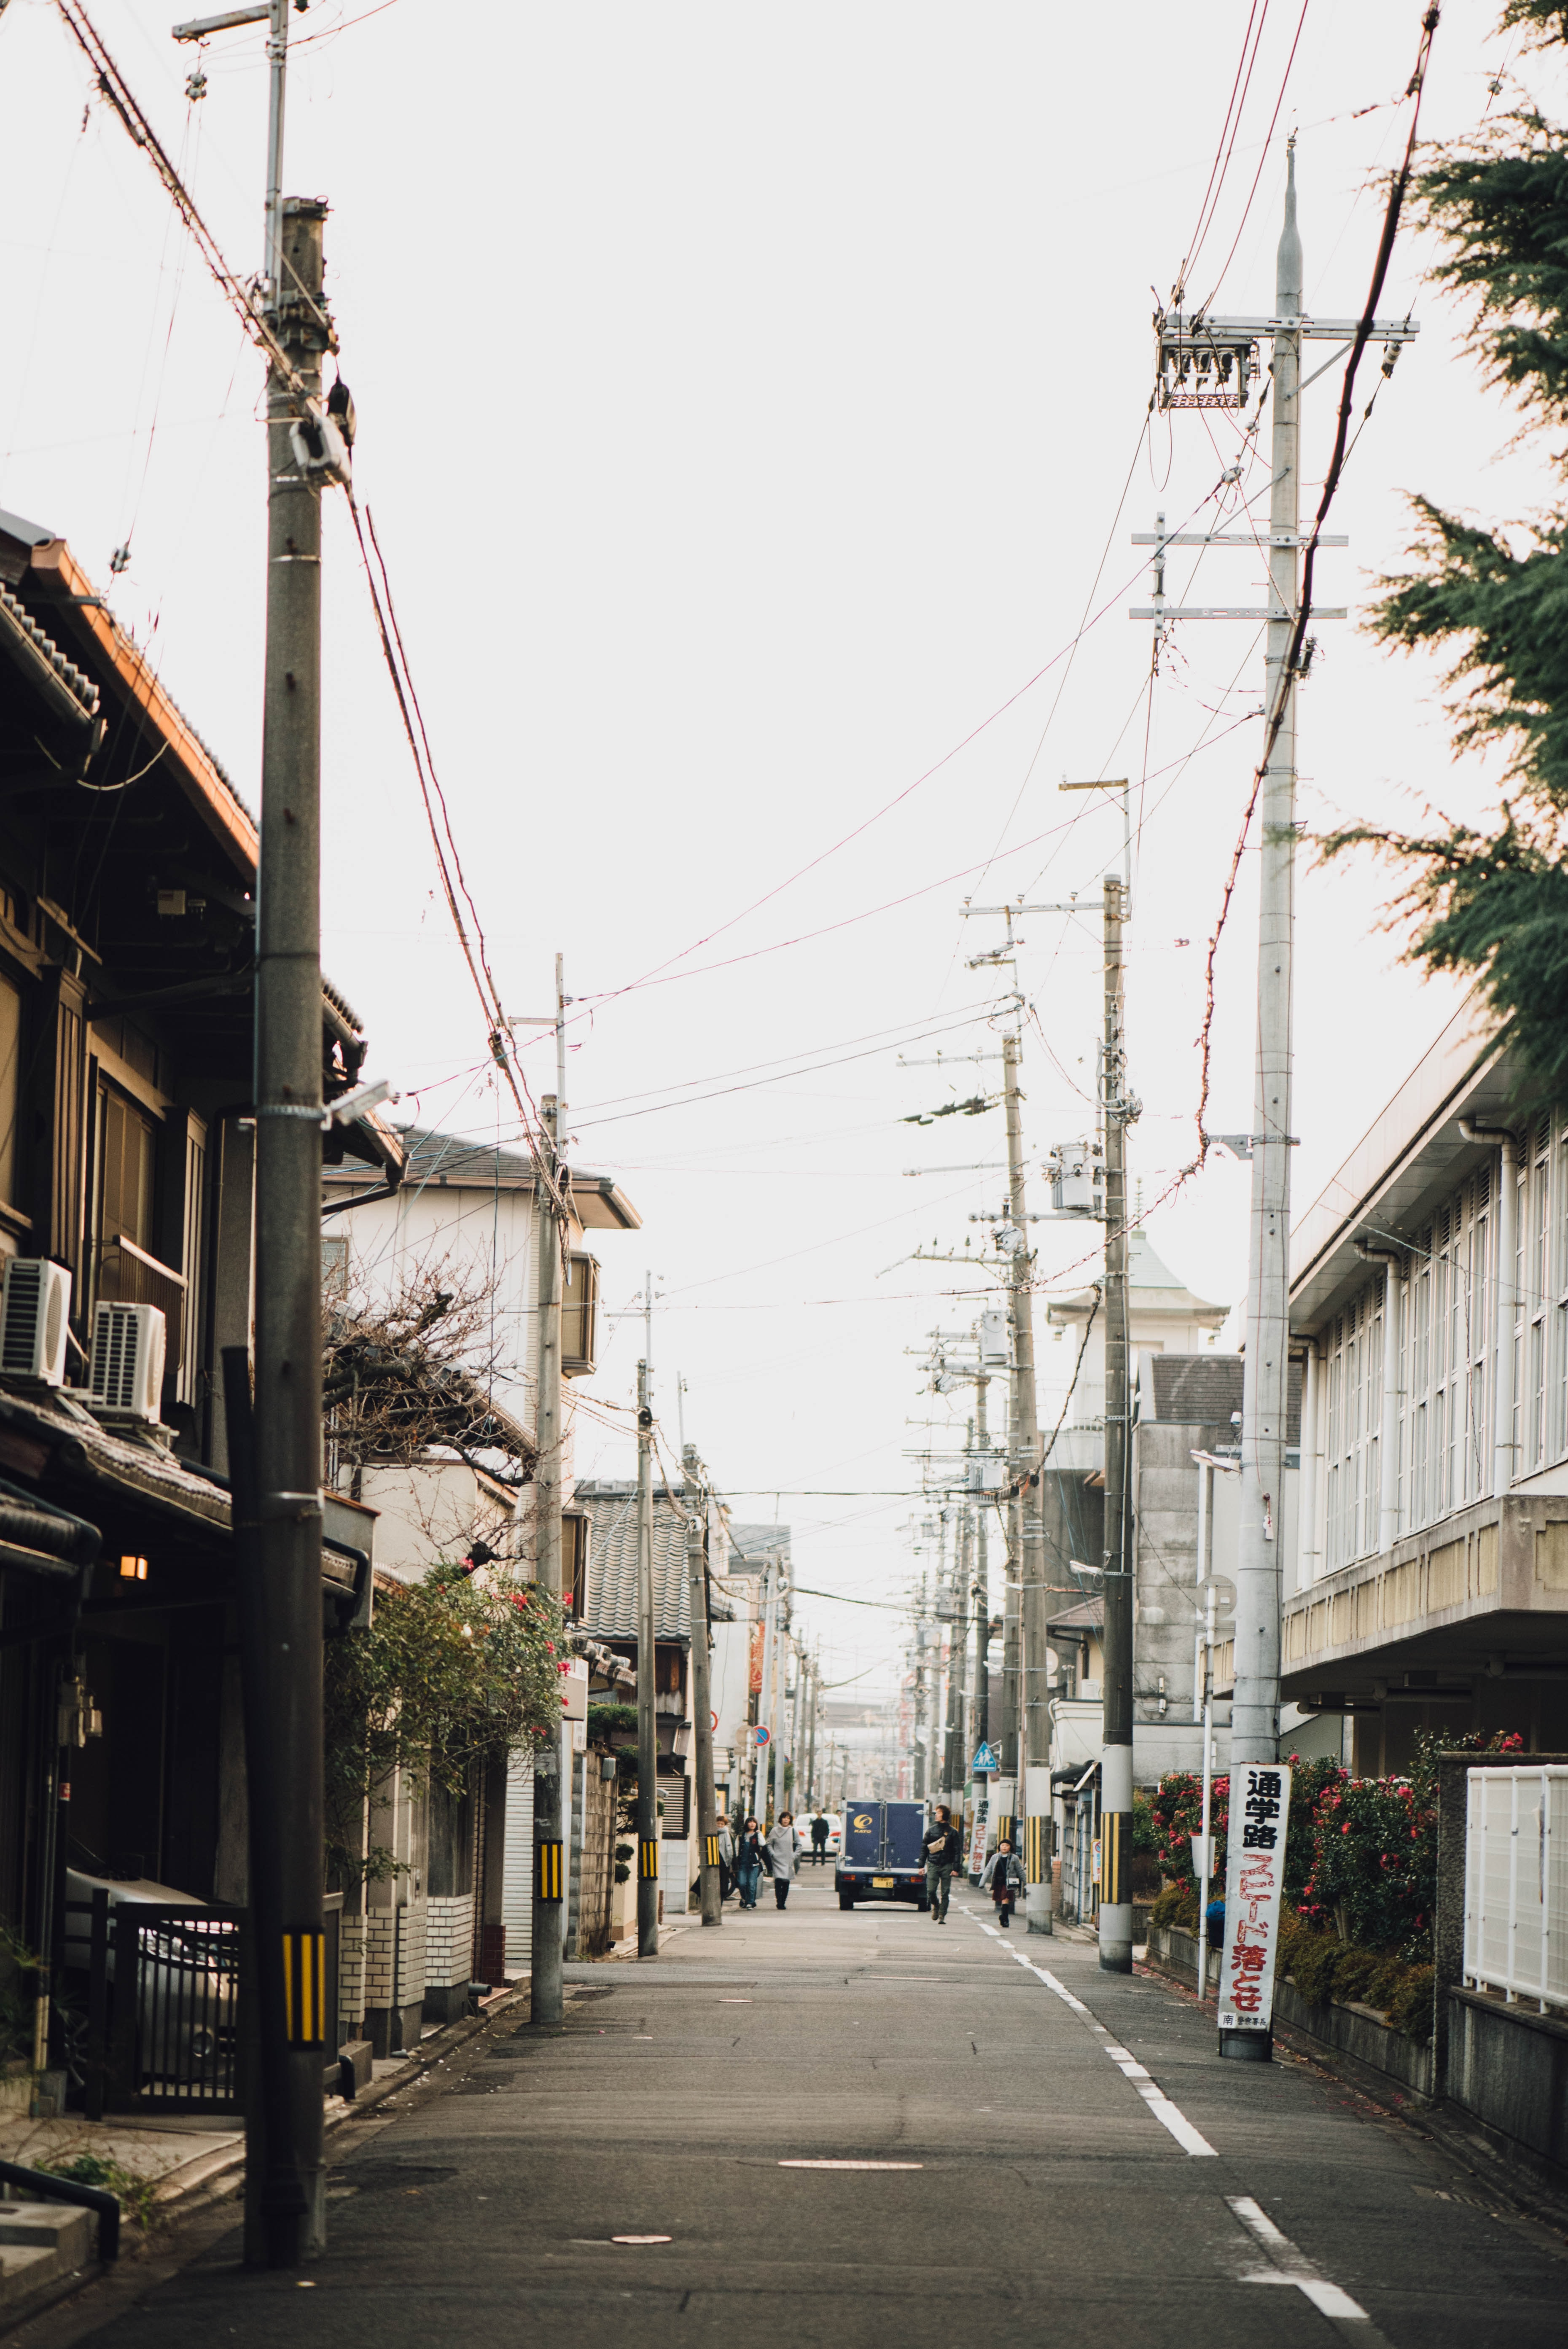 An empty street with power lines overhead.